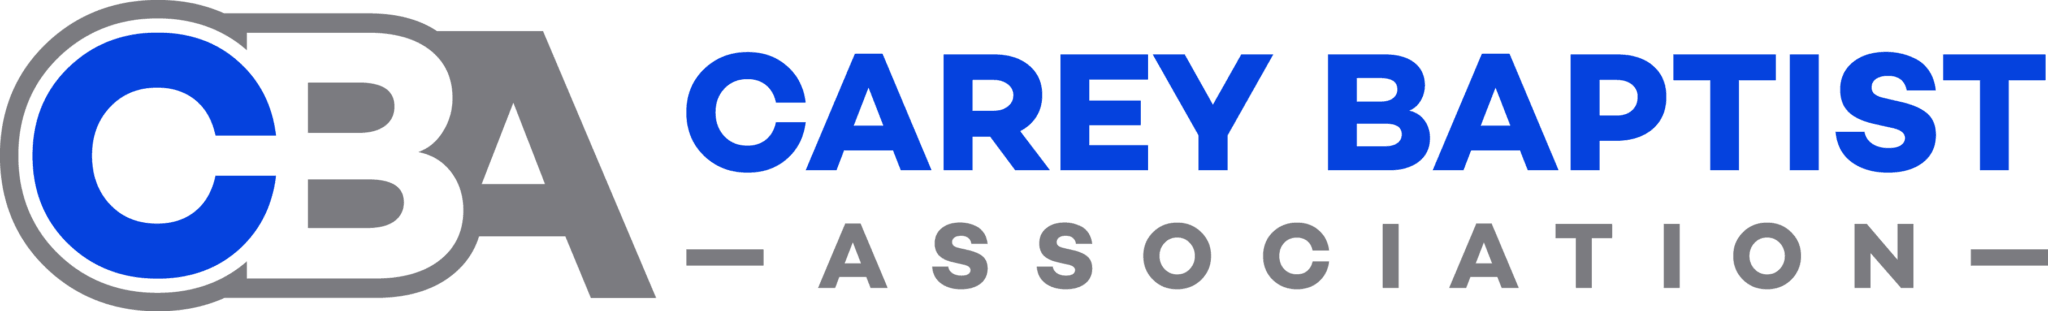 header logo alternative Carey Association